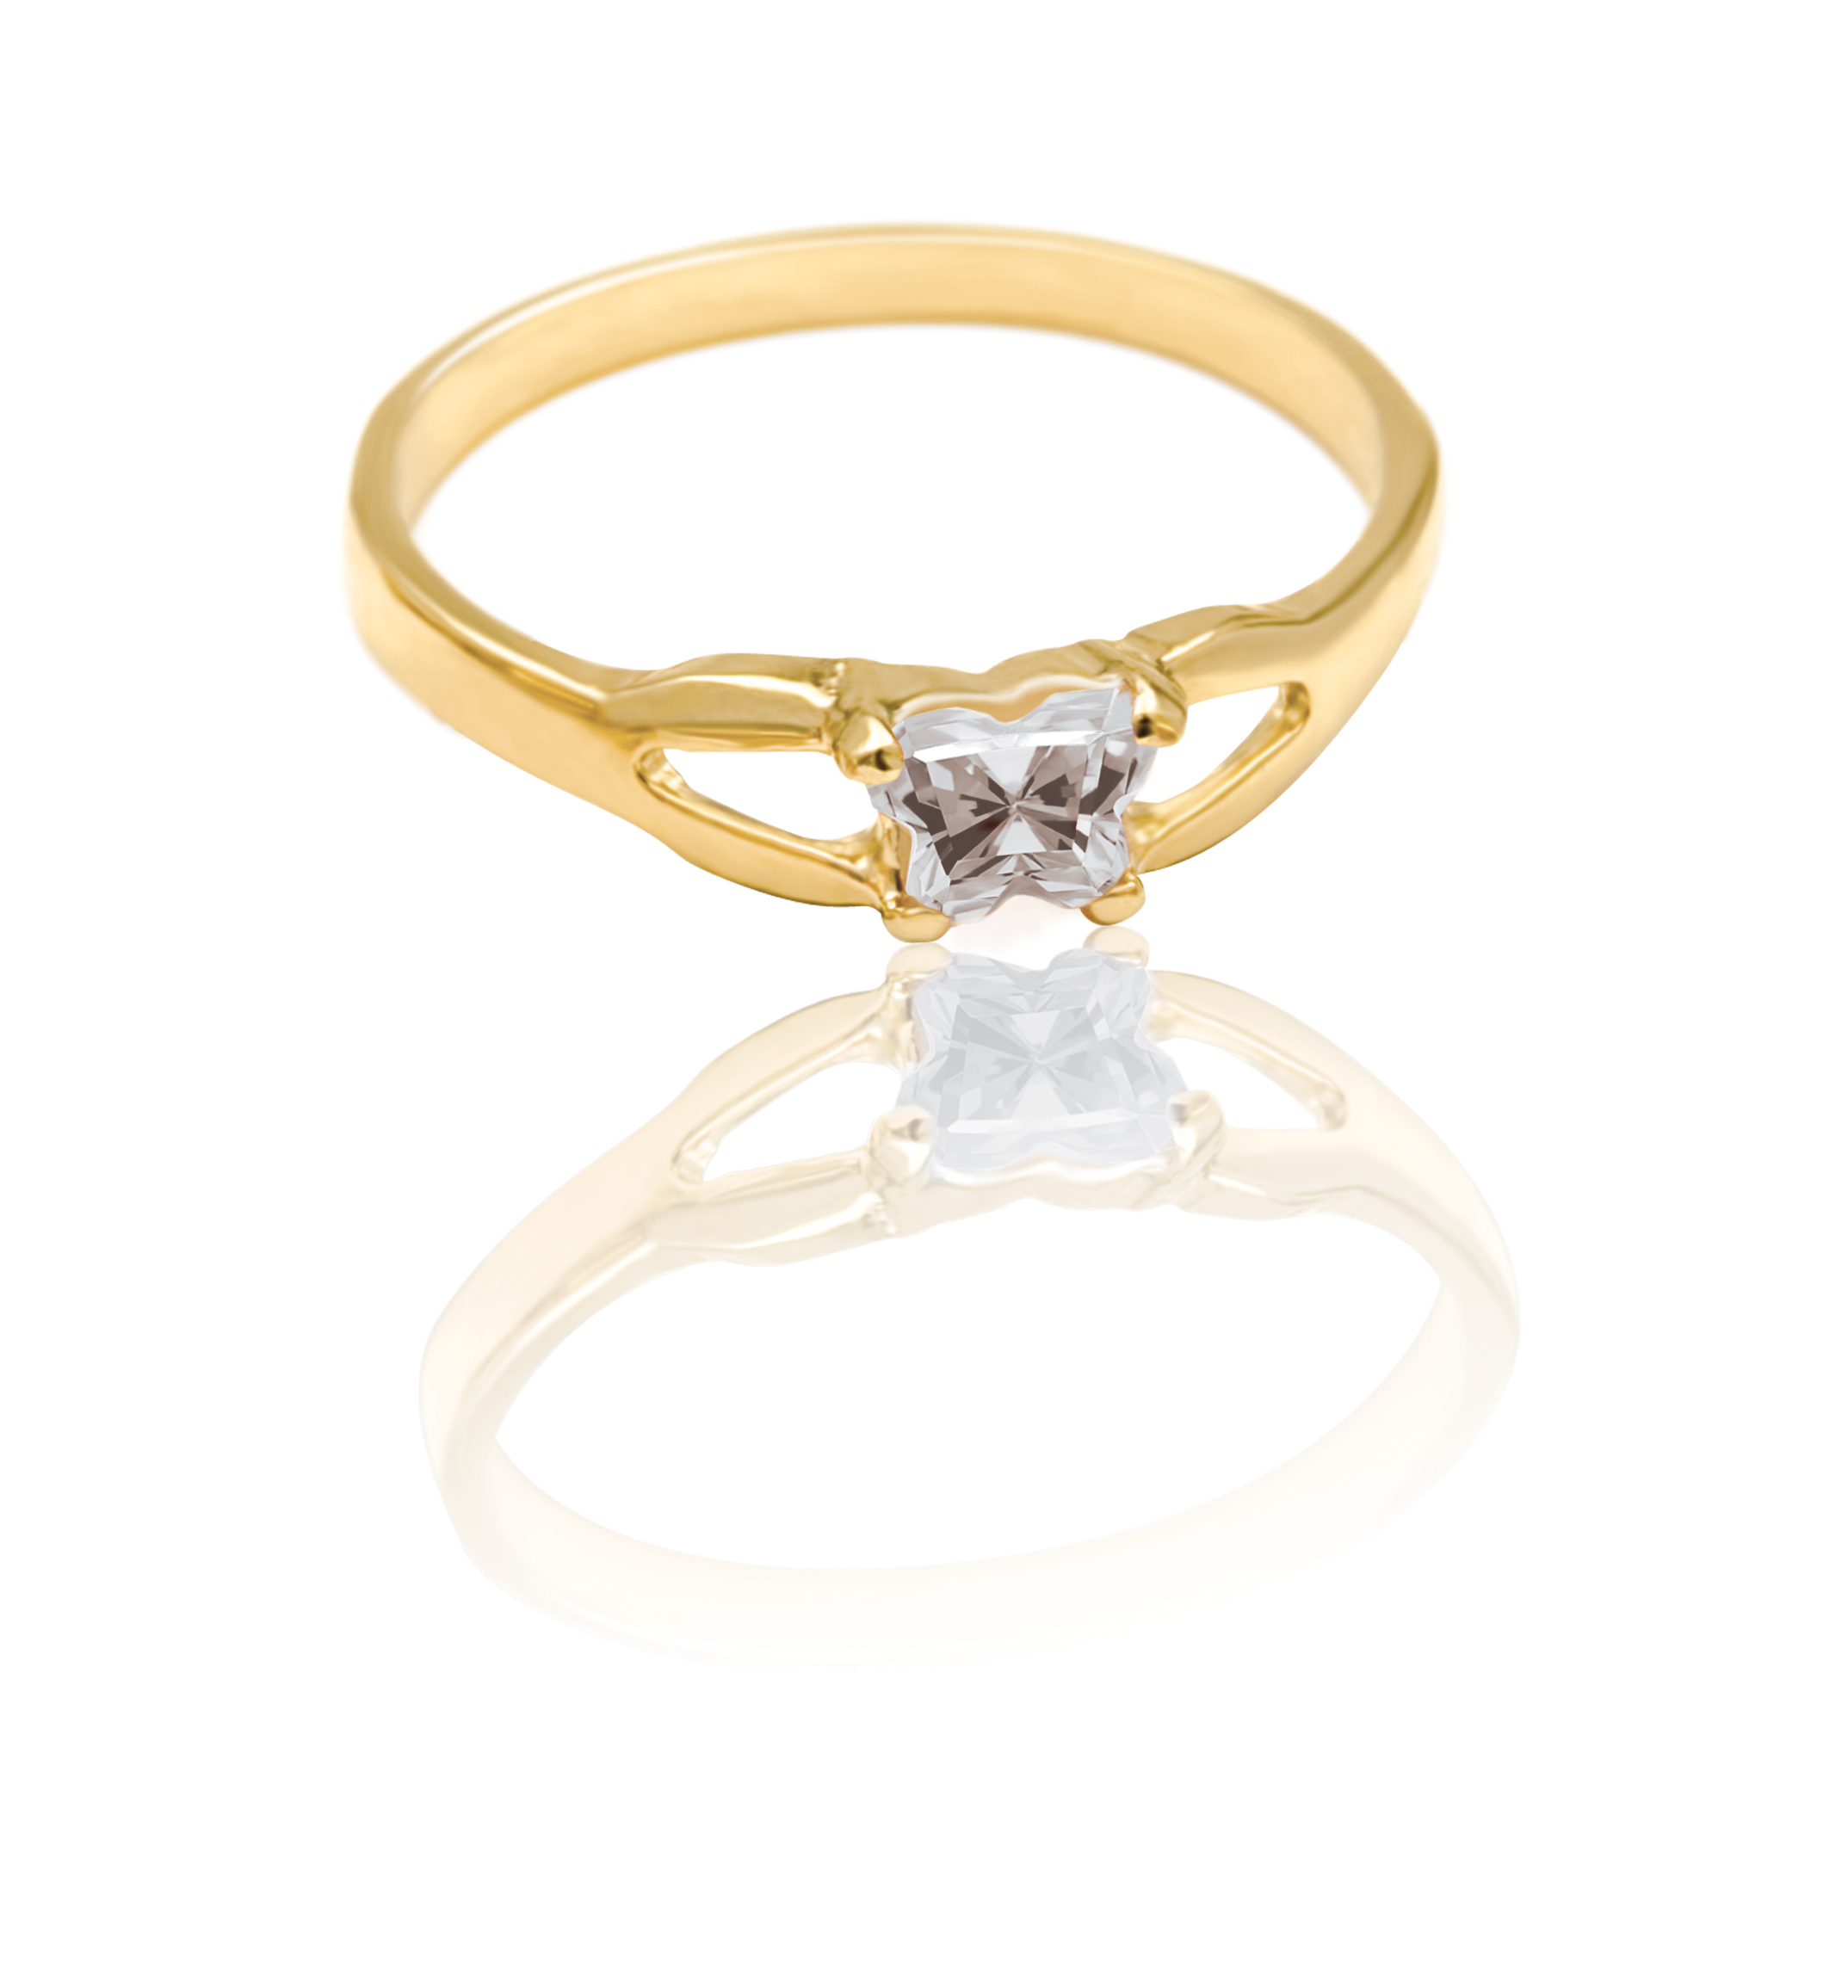 ring for child - 10K yellow Gold & Cubic zirconia (month of April)*